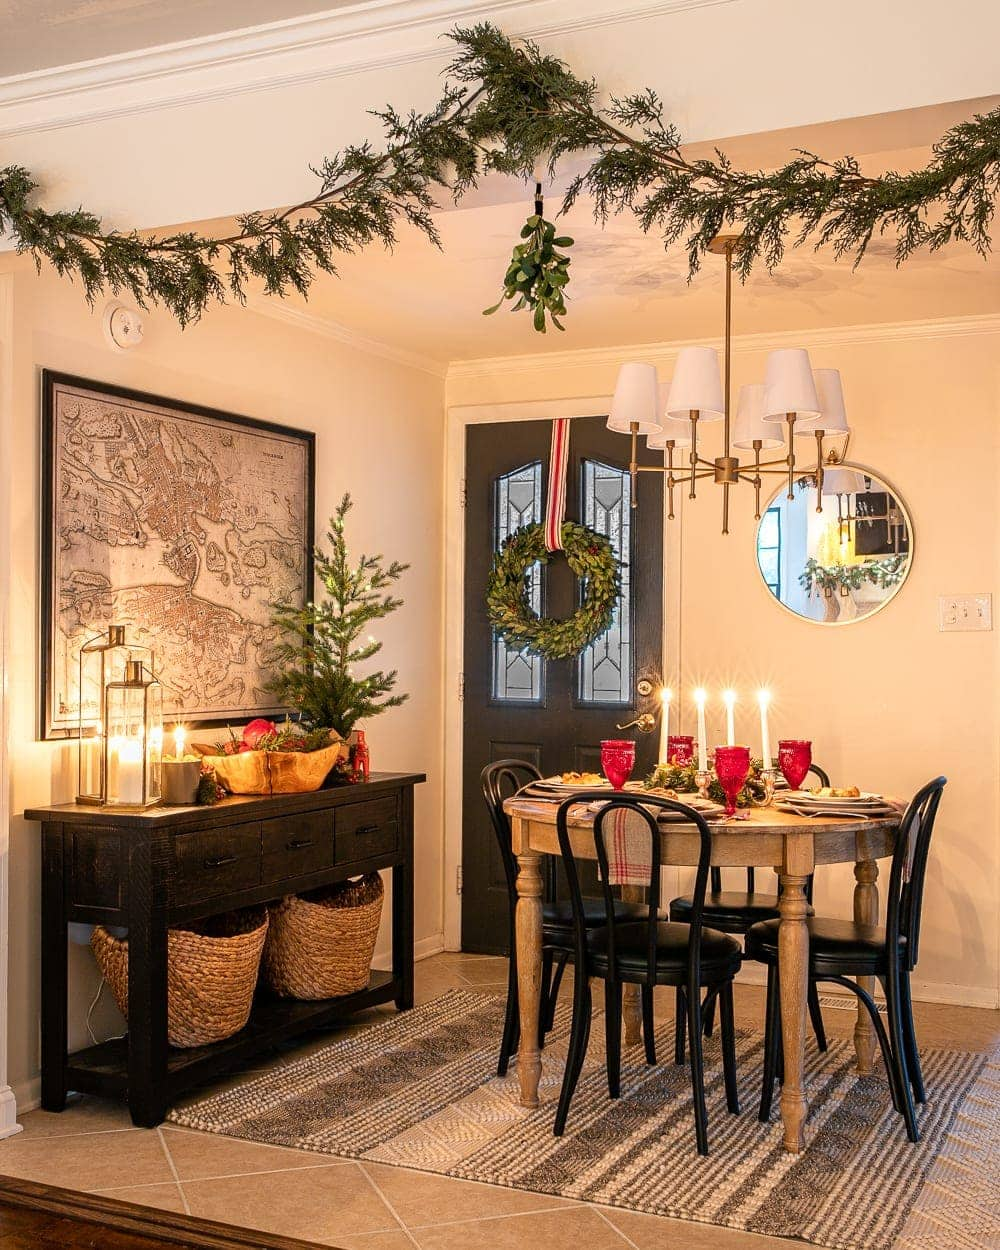 Christmas breakfast nook at night